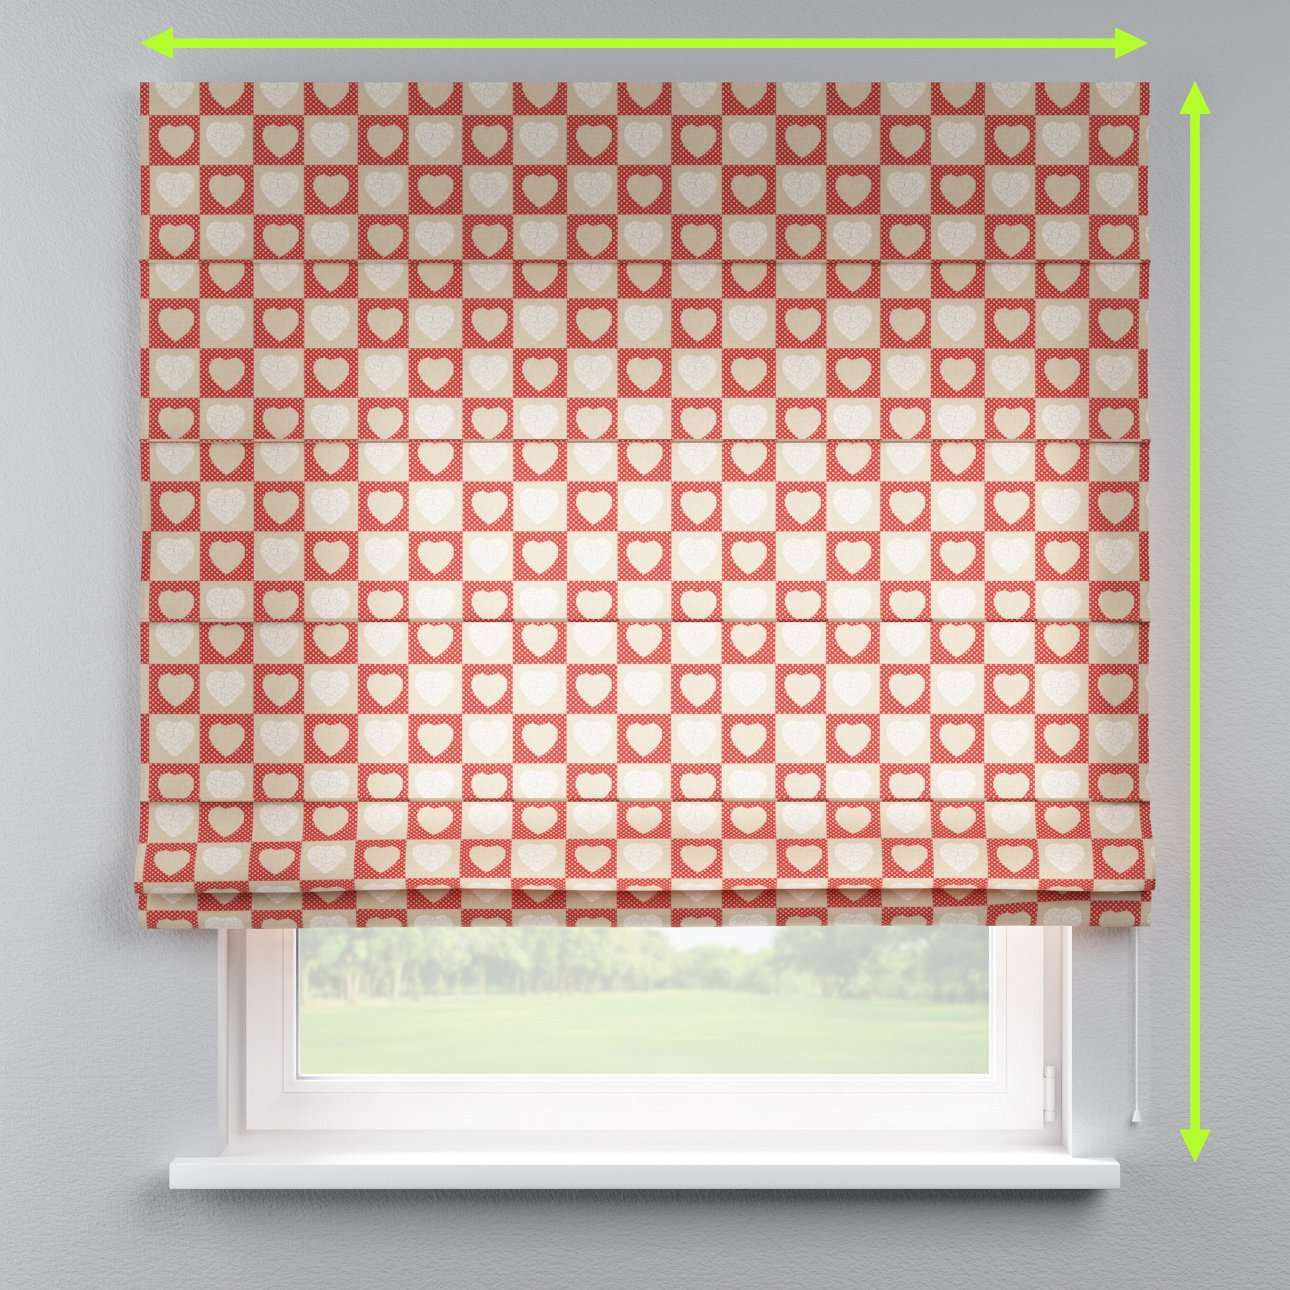 Capri roman blind in collection Freestyle, fabric: 629-16